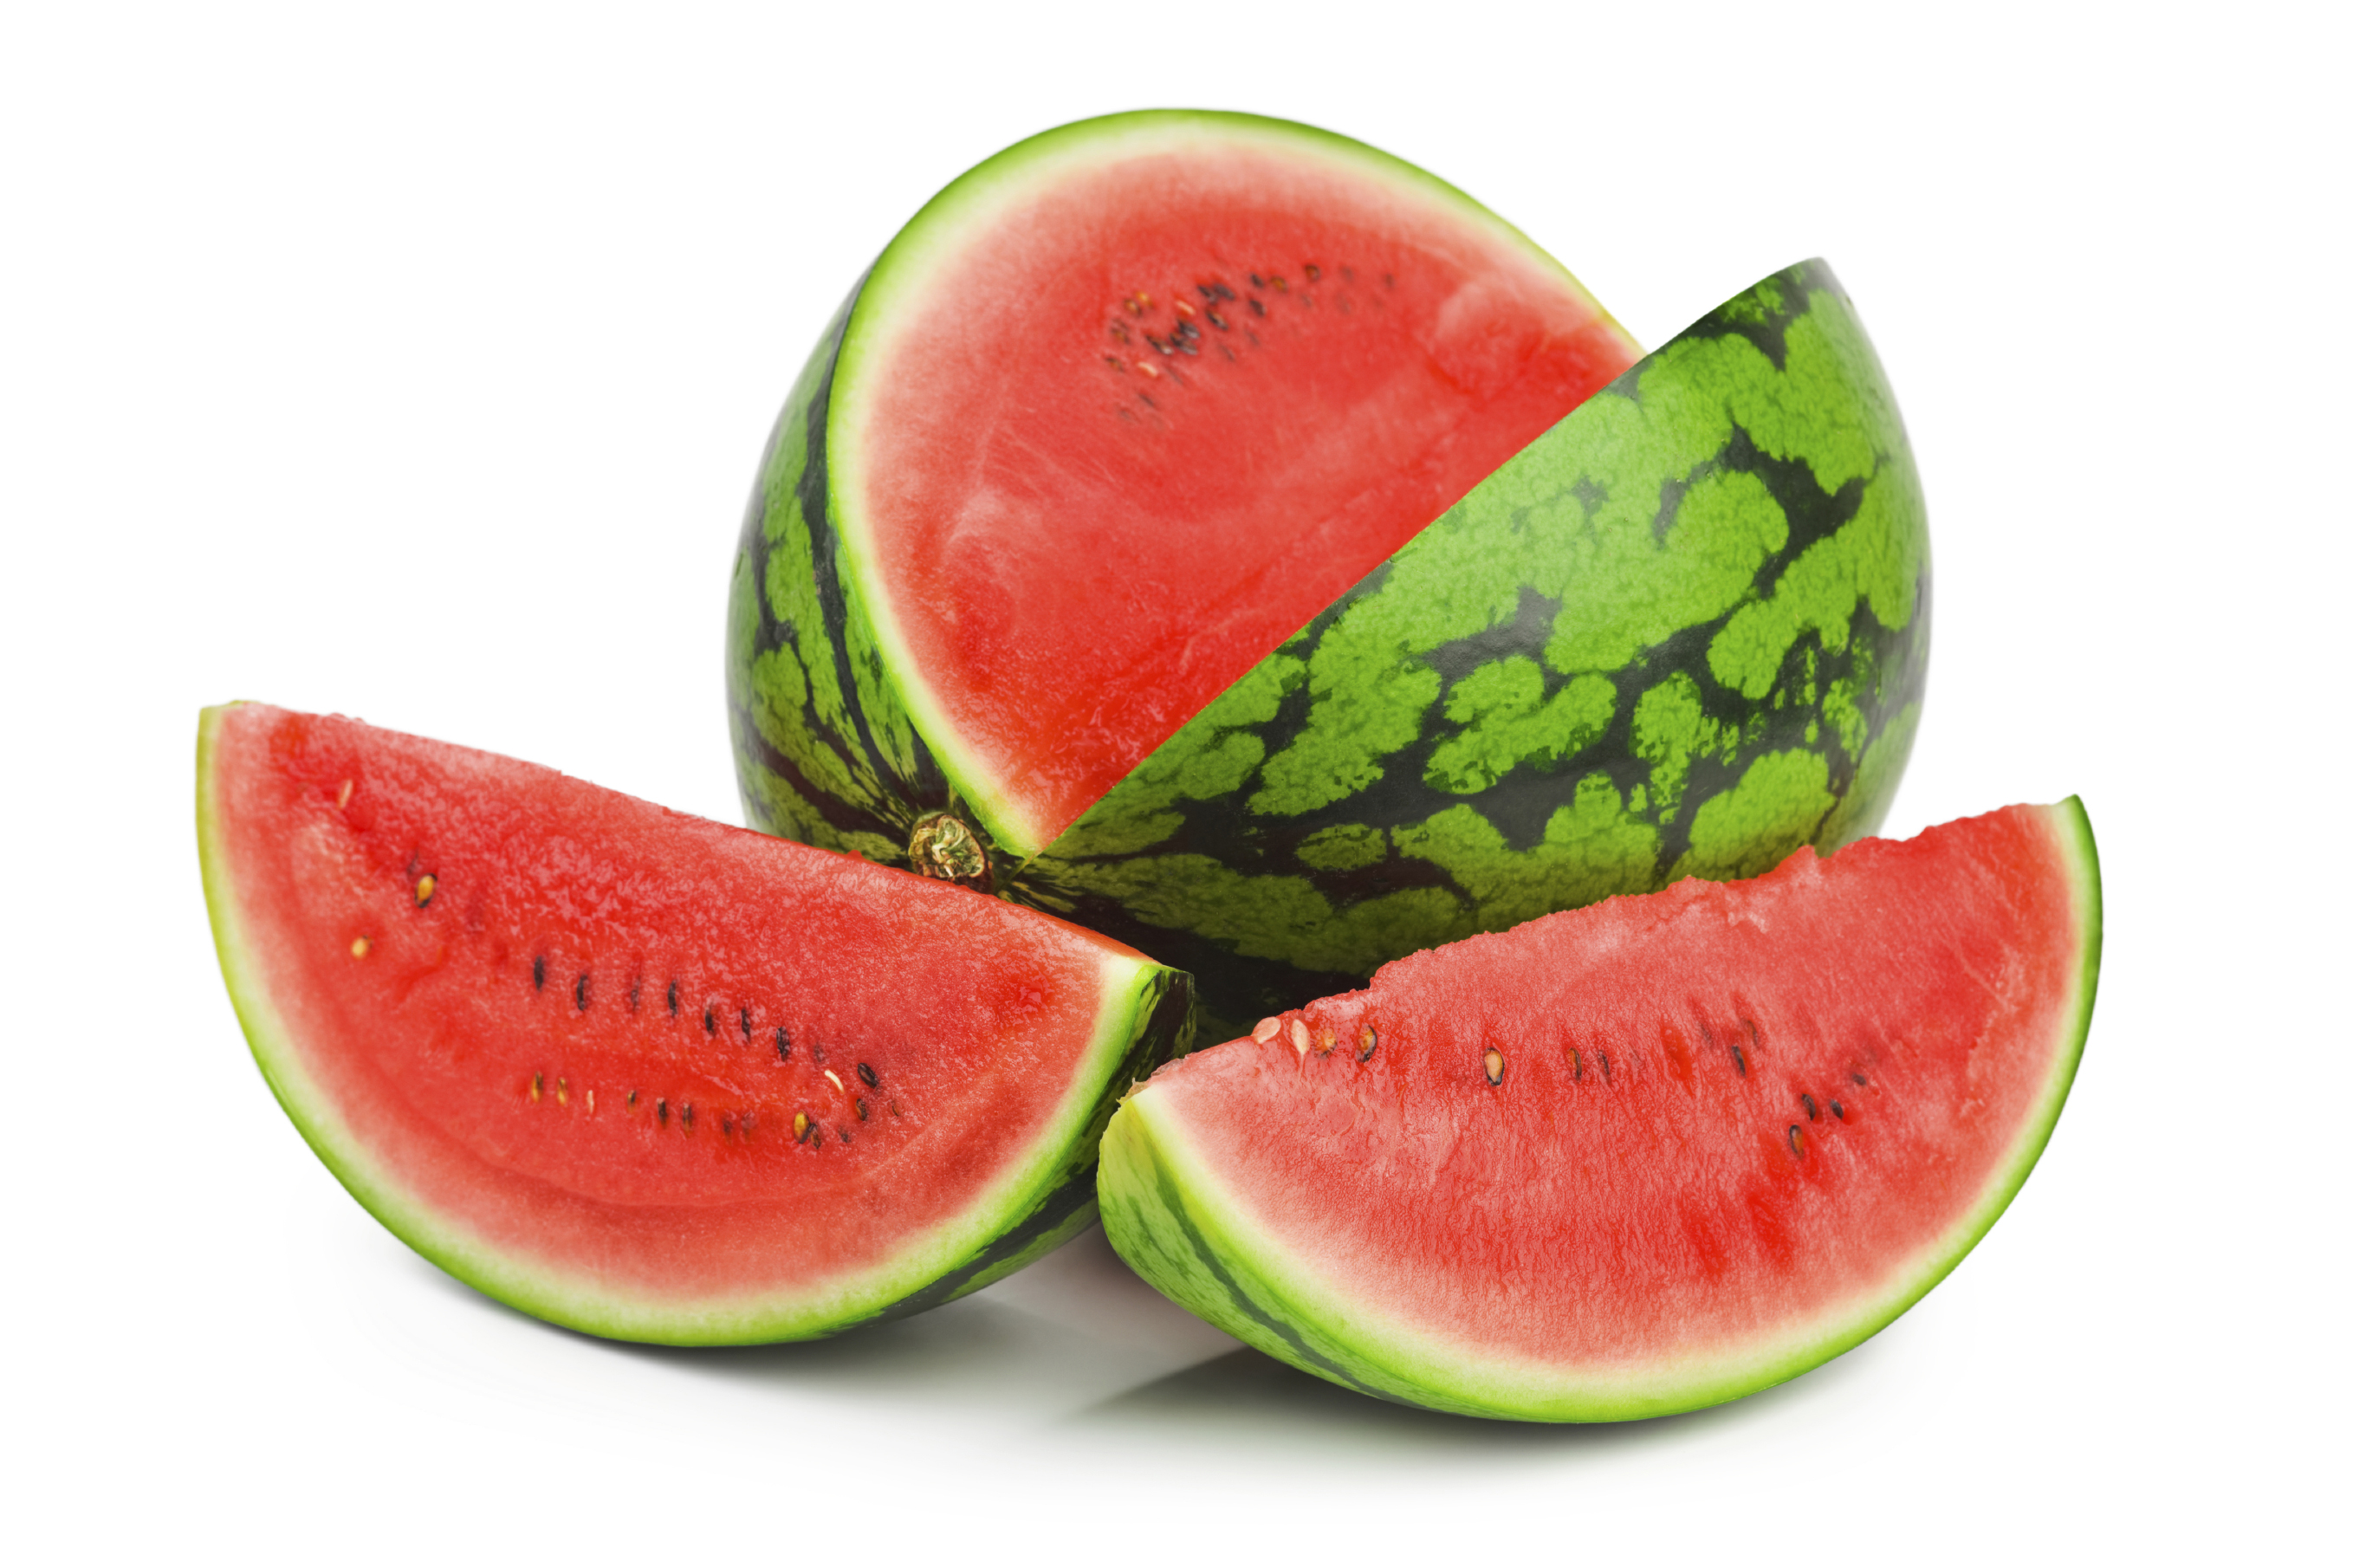 Health benefits and medicinal value of Watermelon